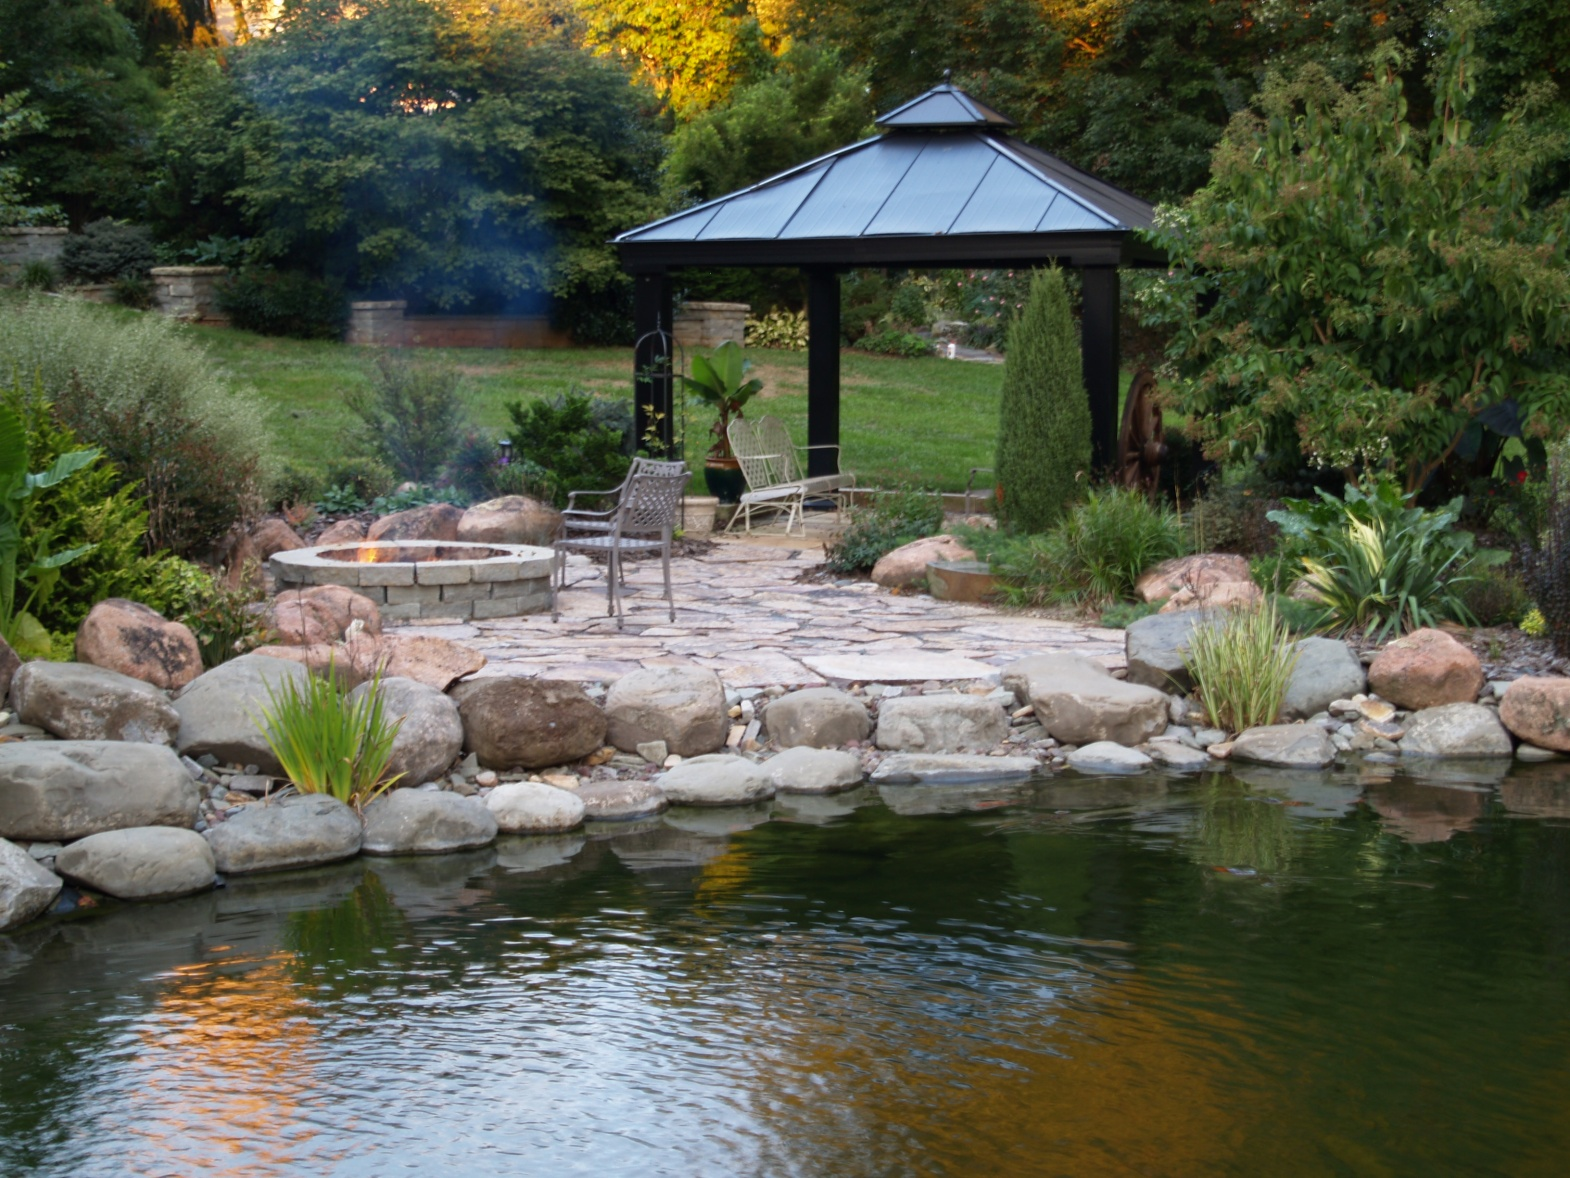 The swimming pond ramblin 39 through dave 39 s garden for Garden design ideas with pond